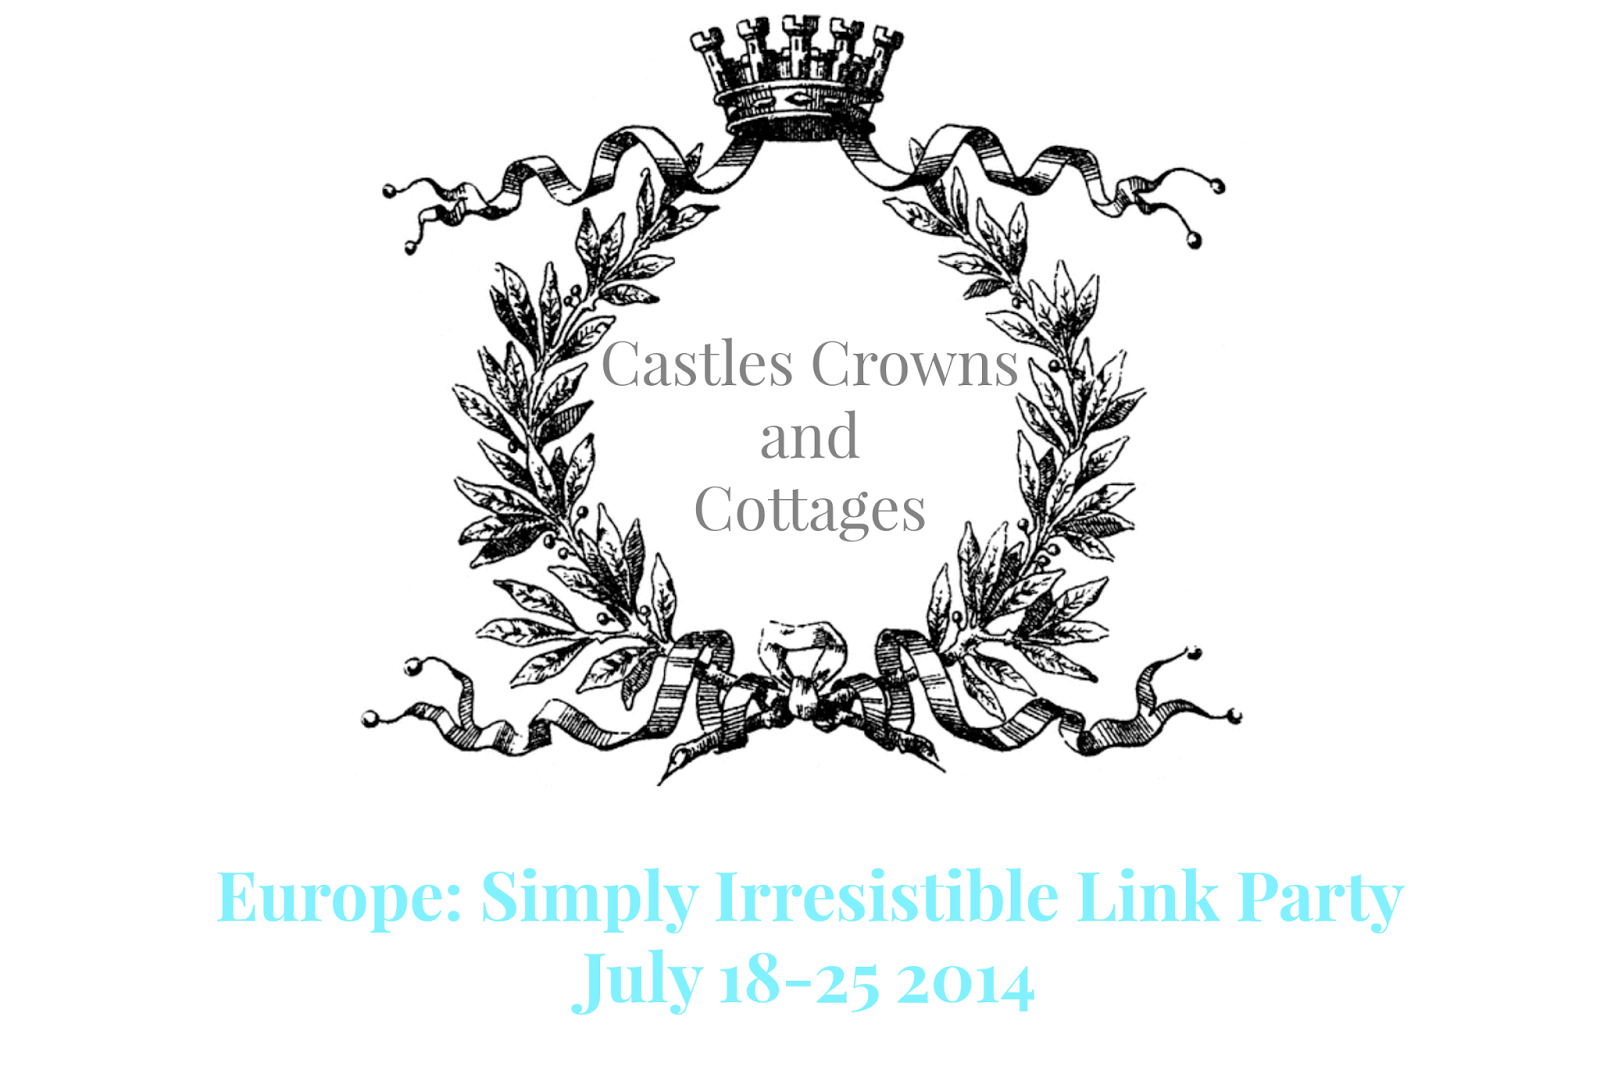 EUROPE: SIMPLY IRRESISTIBLE LINK PARTY